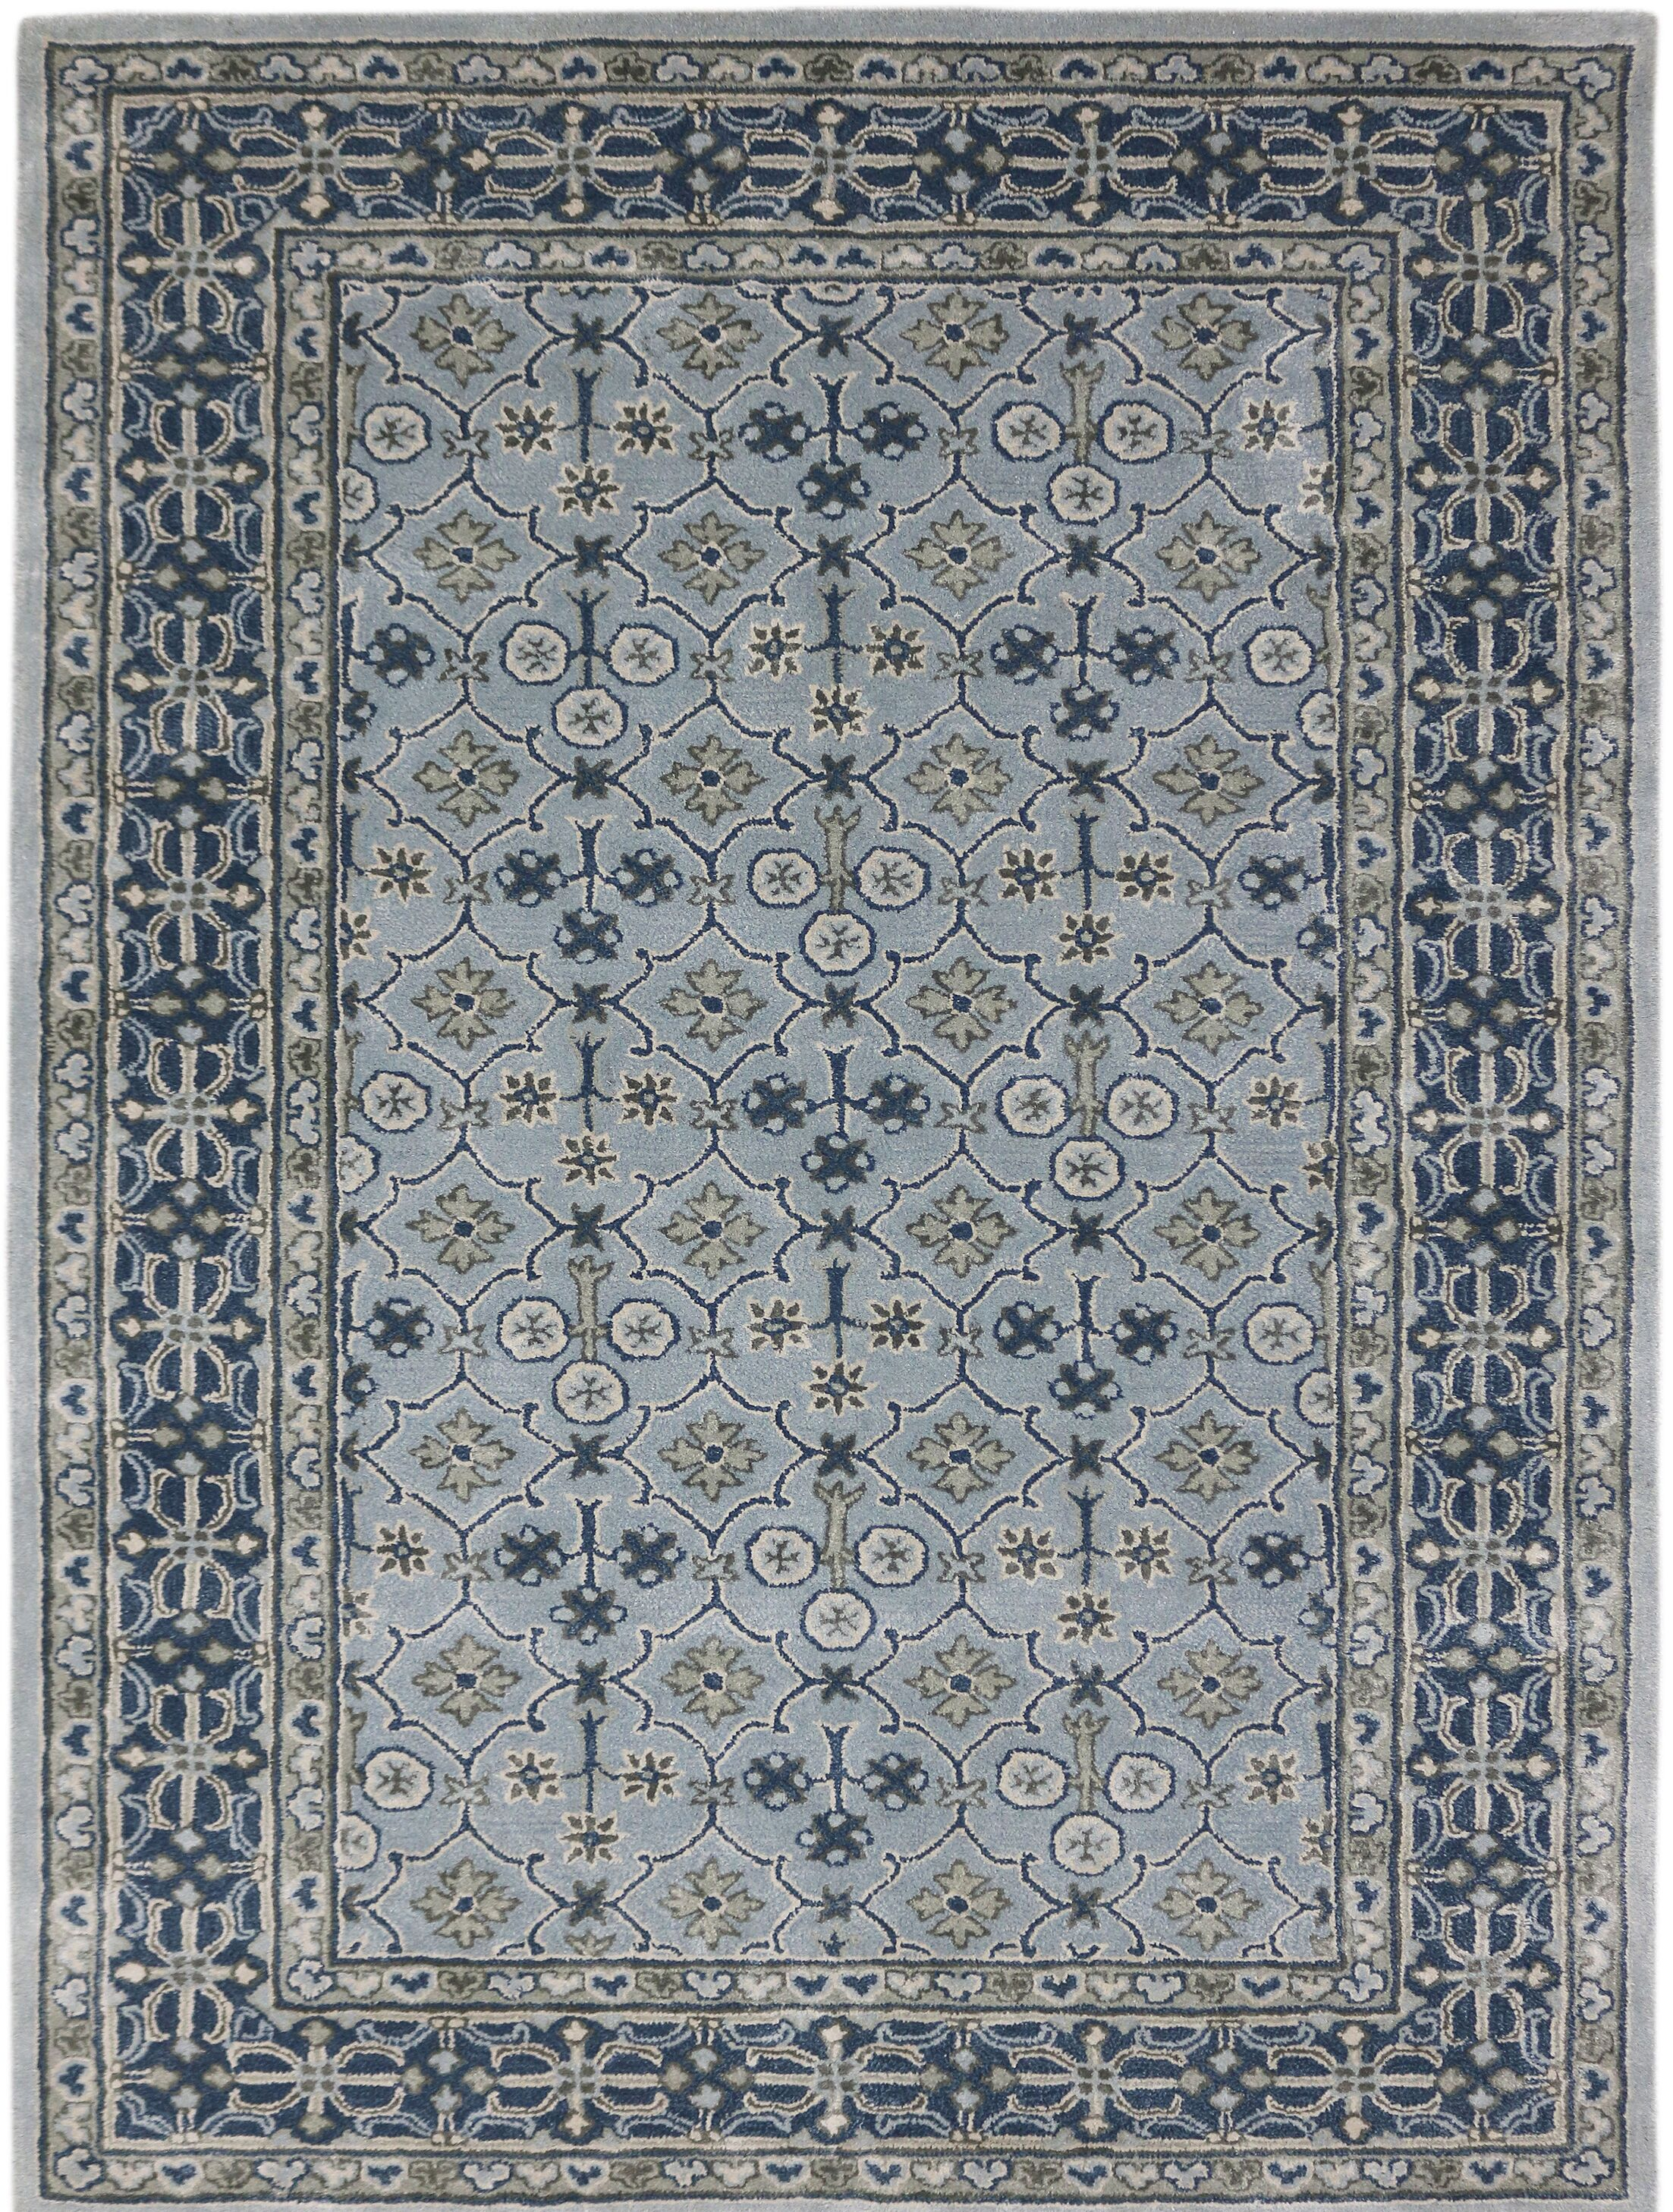 Paxtonville Hand-Tufted Handmade Blue Area Rug Rug Size: 5' x 8'